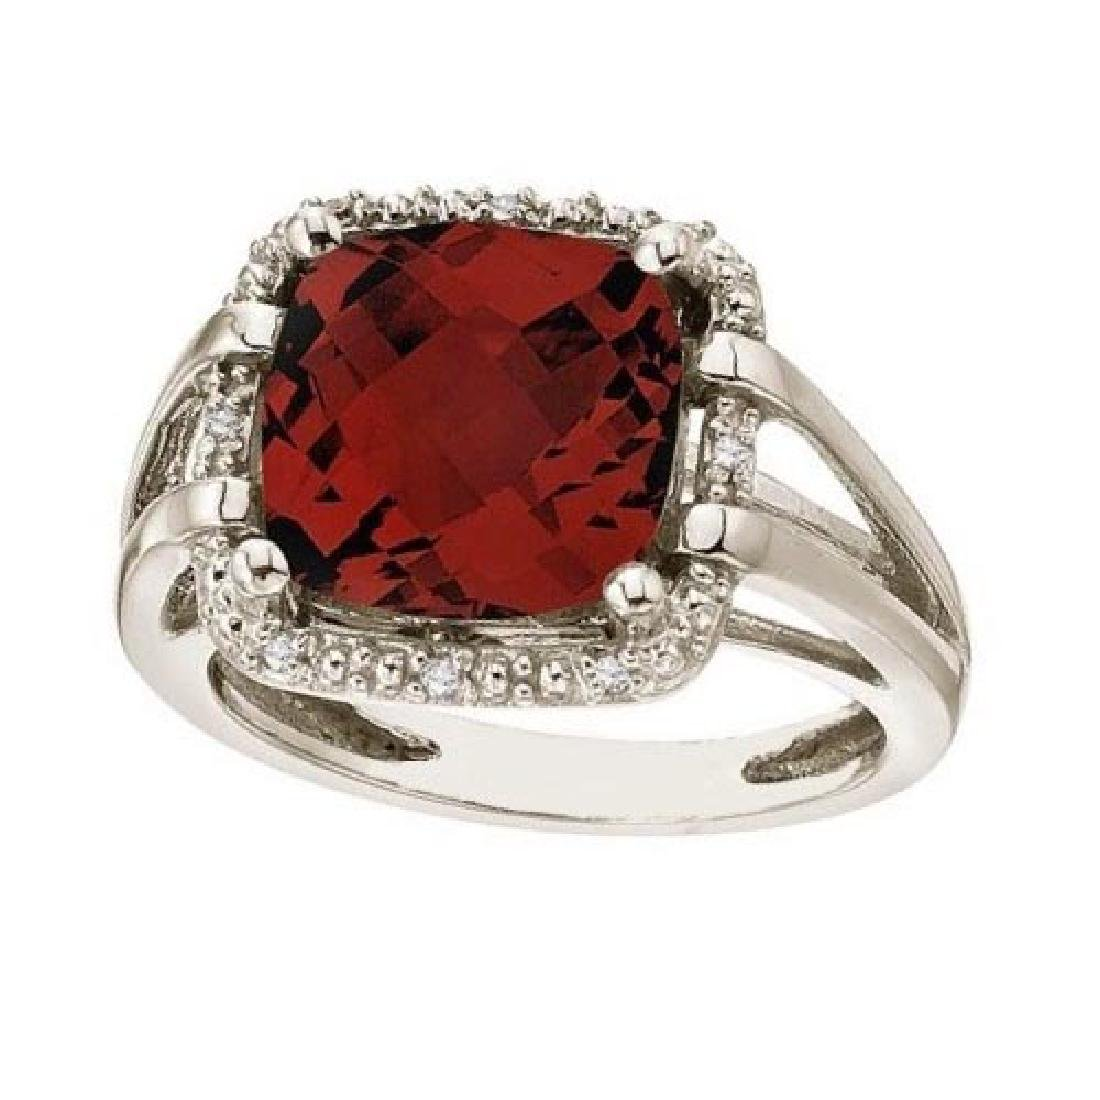 Cushion-Cut Garnet and Diamond Cocktail Ring 14k White